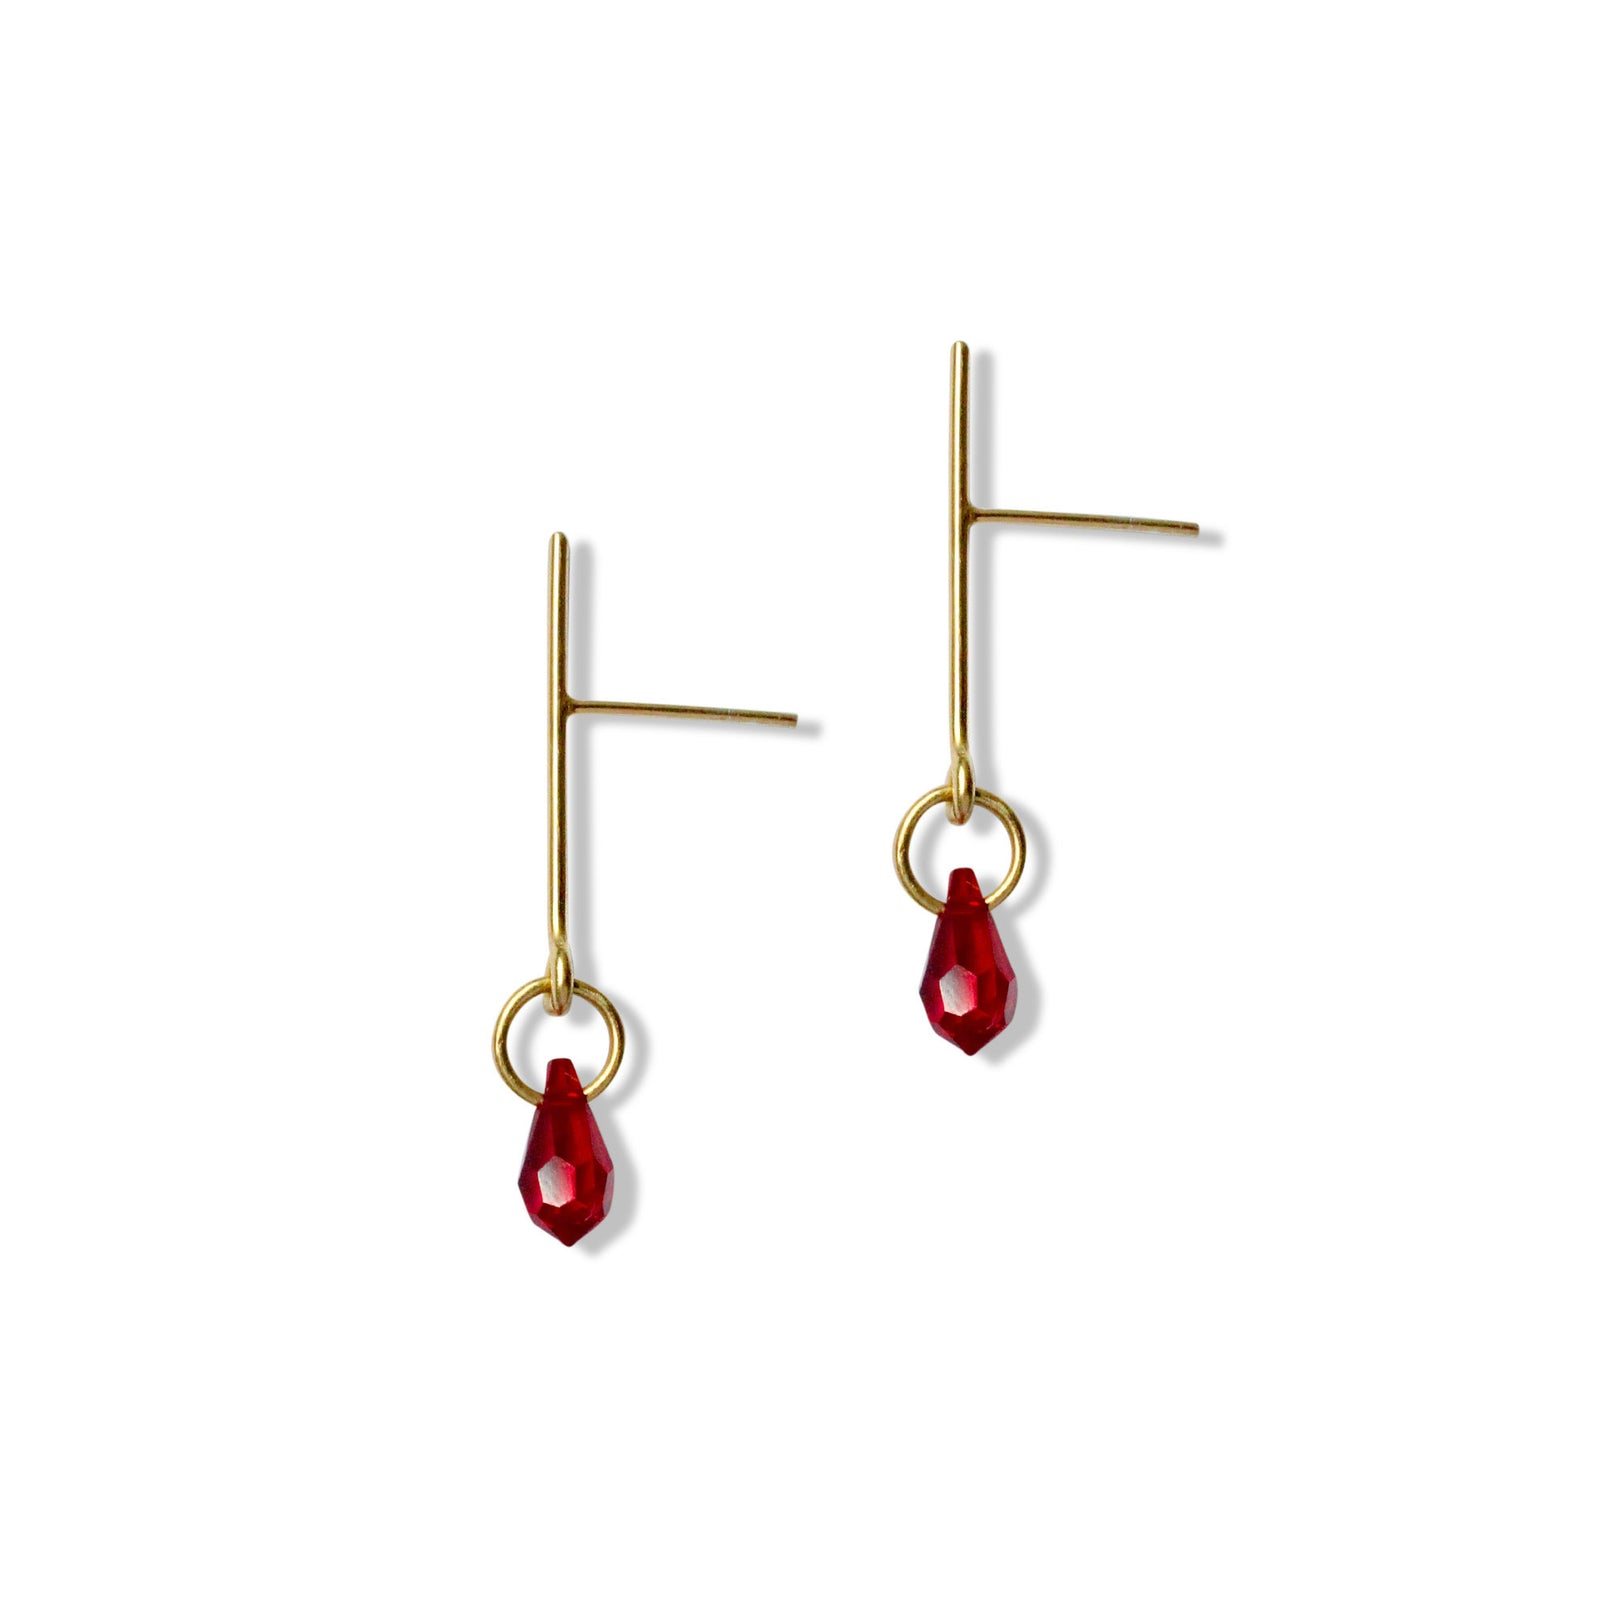 Crimson Ink Drop Earrings - Gold Vermeil